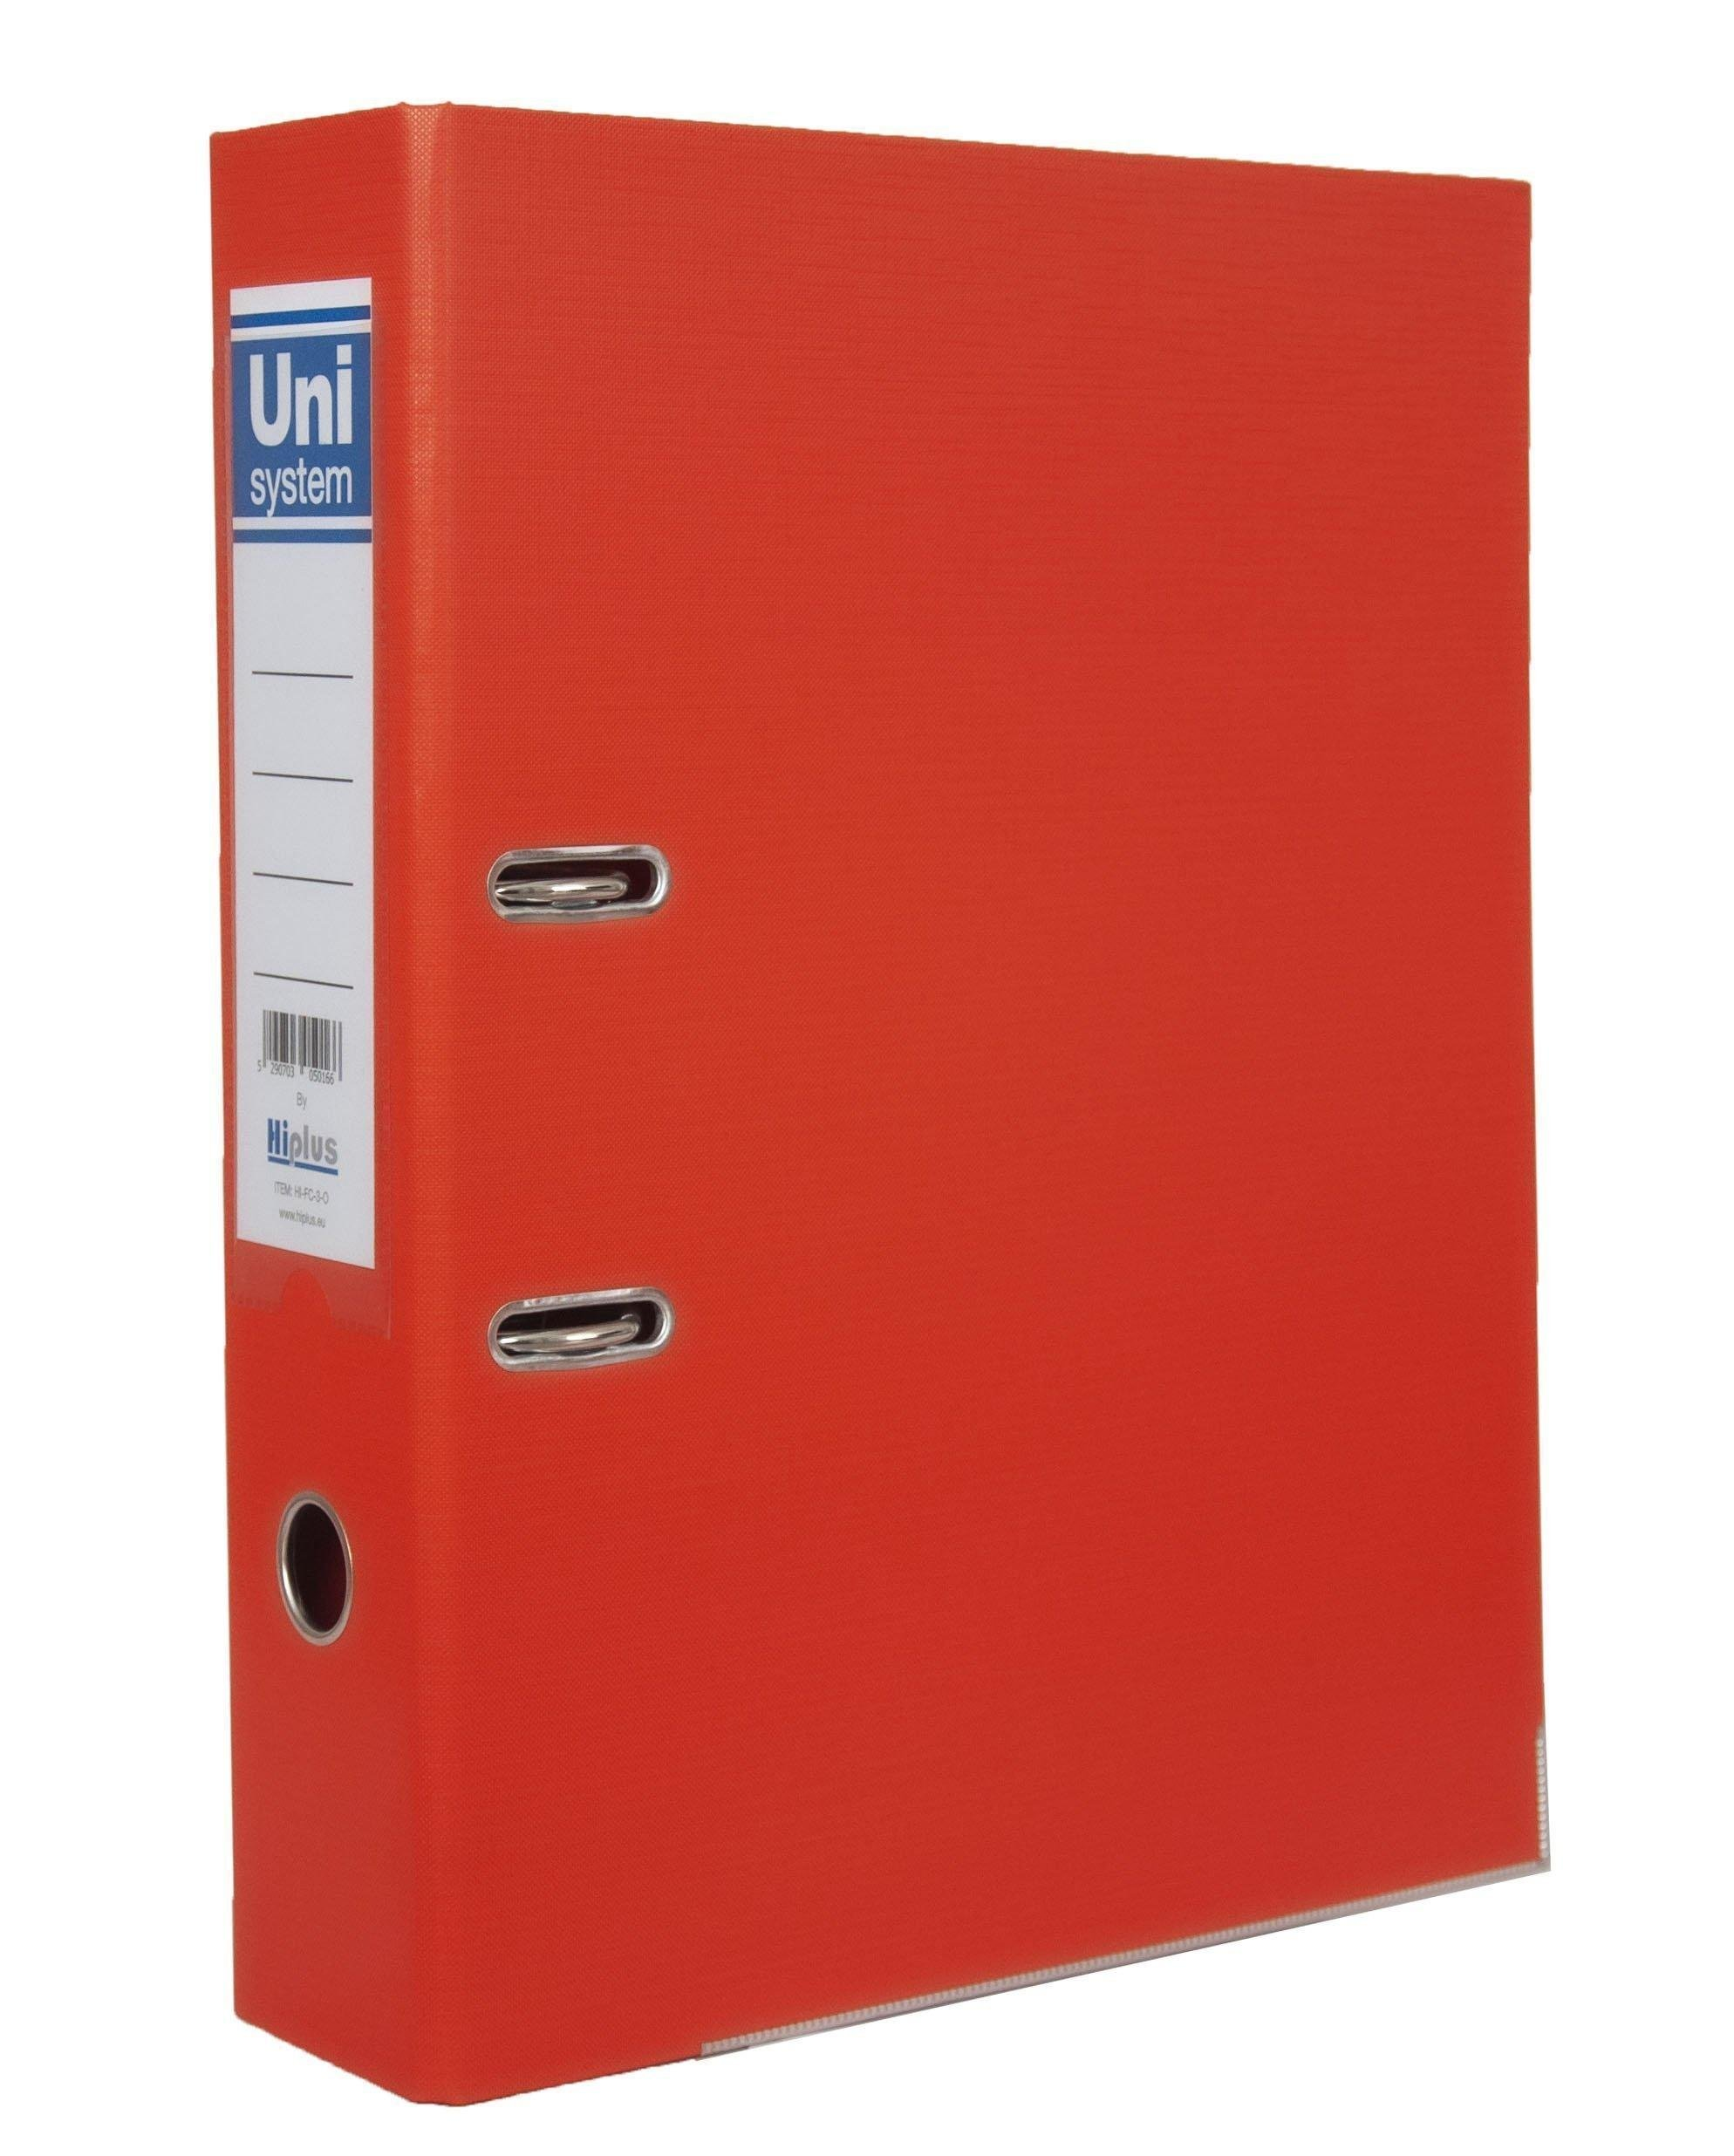 "HI-PLUS FCP LEVER ARCH FILE  - 3"" SPINE - ORANGE"